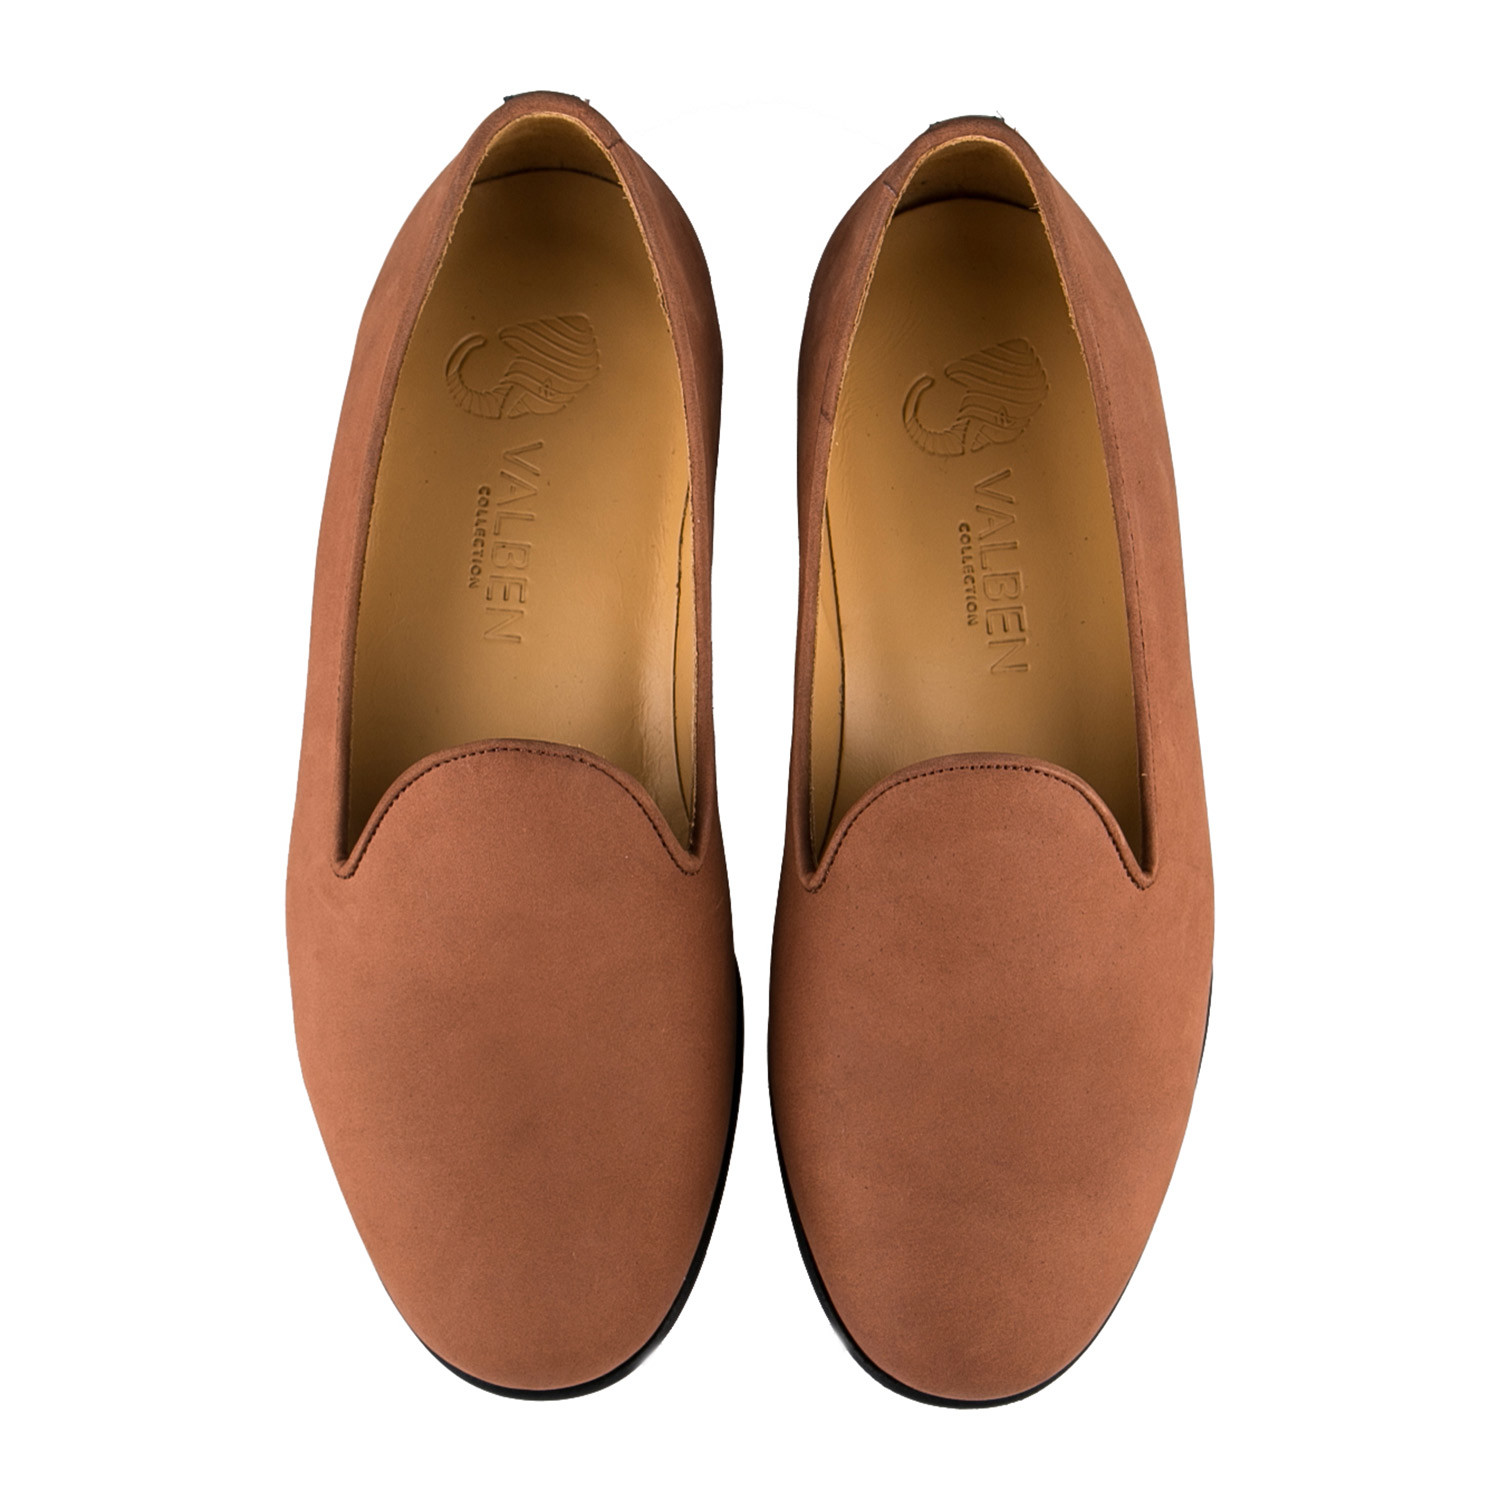 Men's moccasin slippers are designed for comfort and functionality. Each style offers a fleece insole to surround your tired foot with softness. The attractive suede exterior of these slippers make them multipurpose shoes: you can wear them both indoors and for a quick trip outdoors.